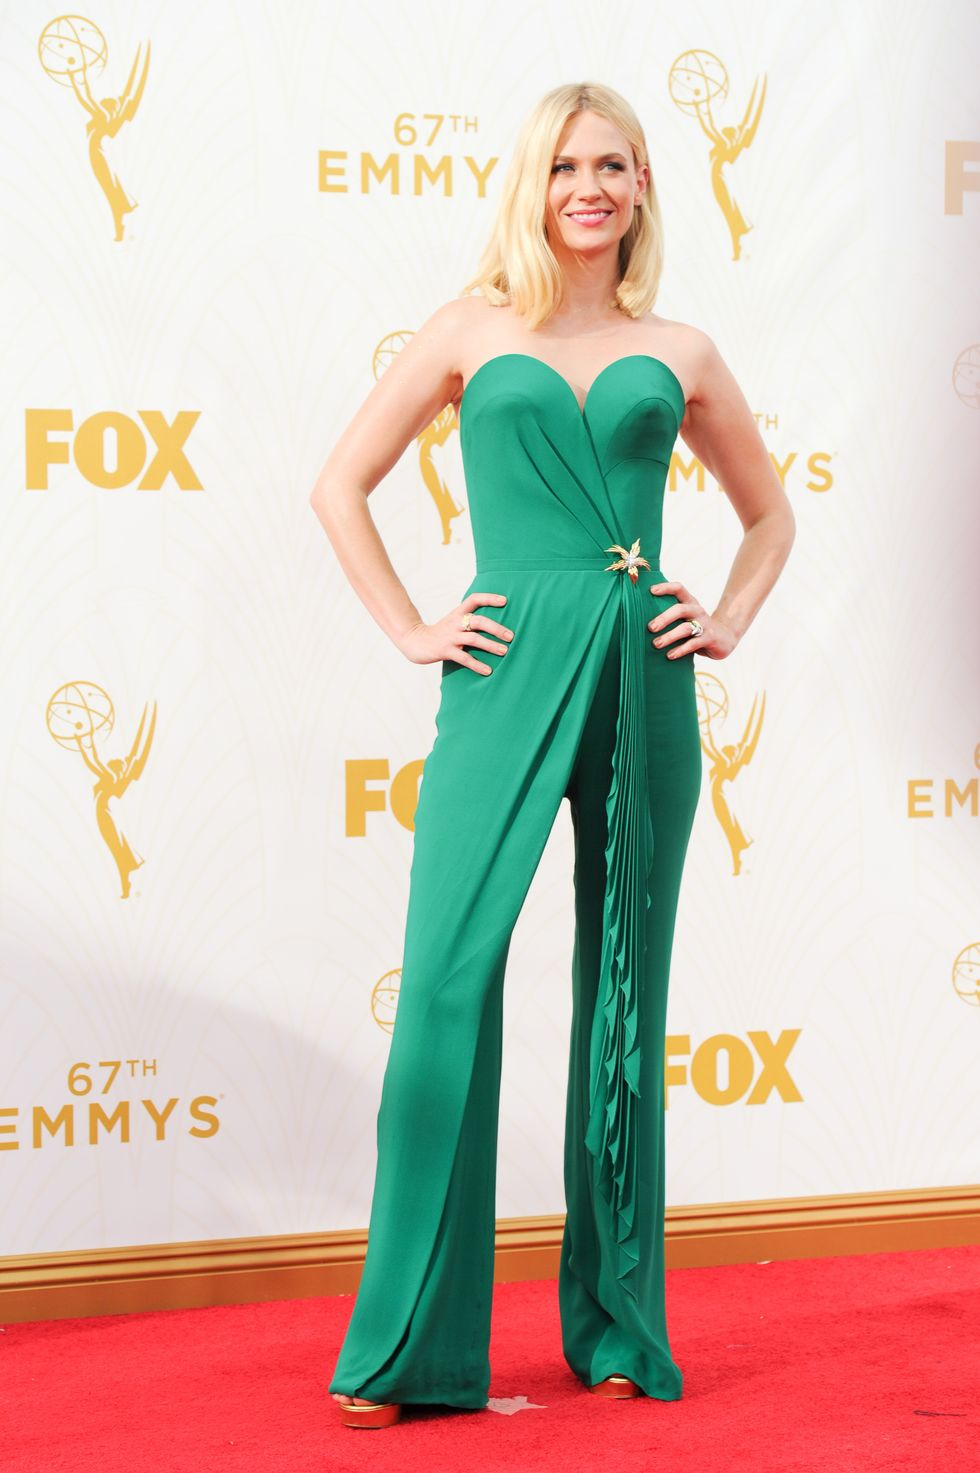 The Best and Worst Fashion at the Emmys